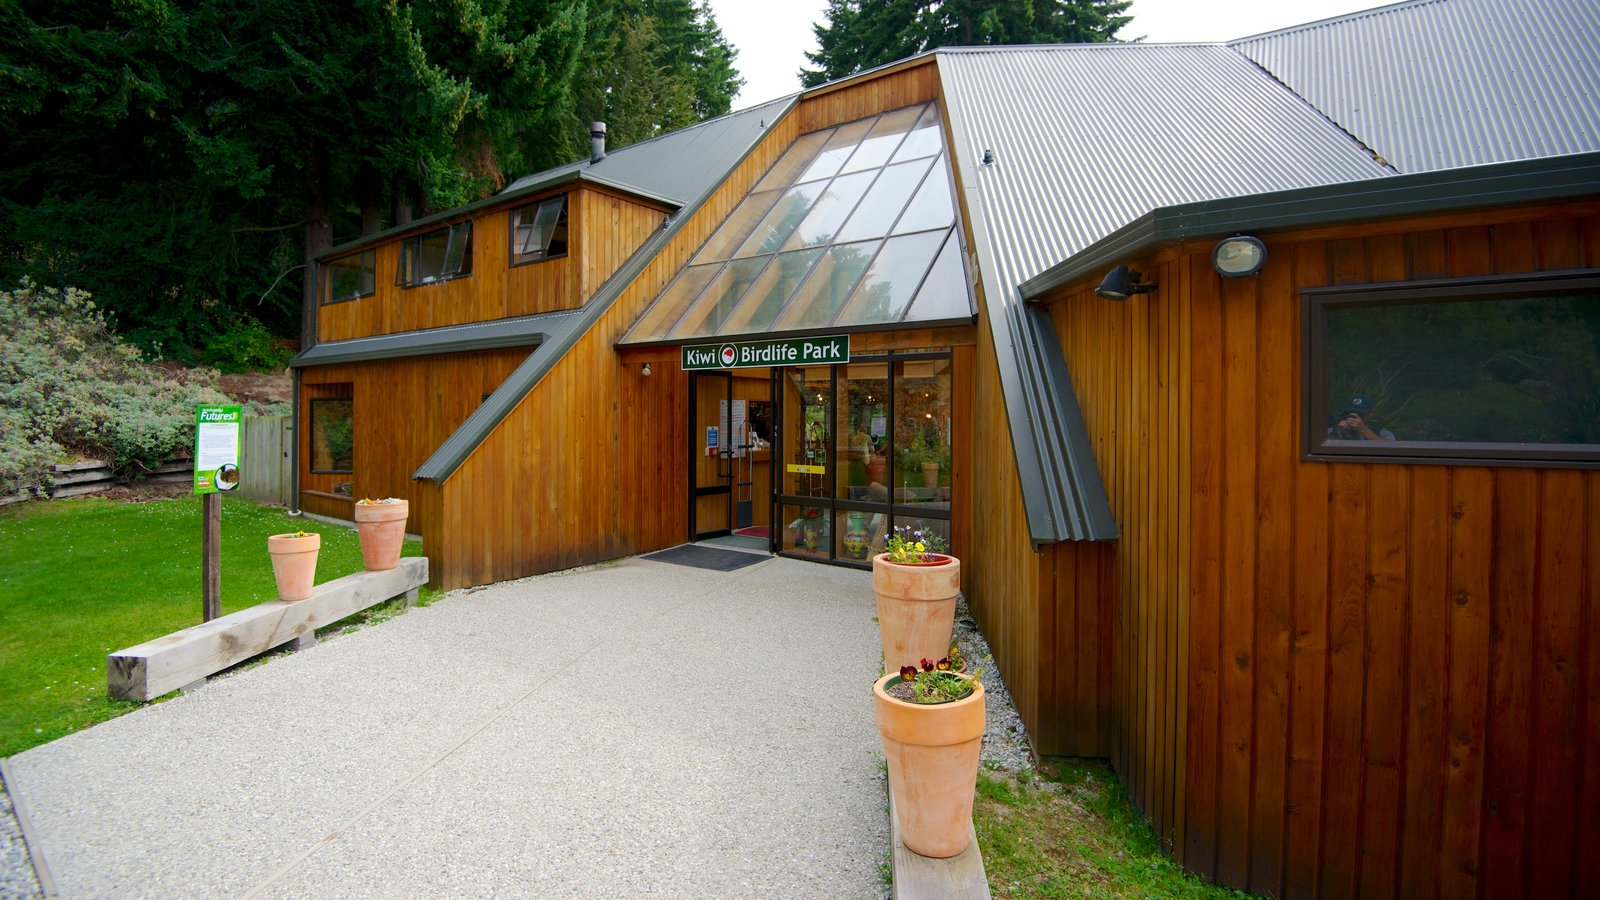 Kiwi and Birdlife Park which includes a house and modern architecture